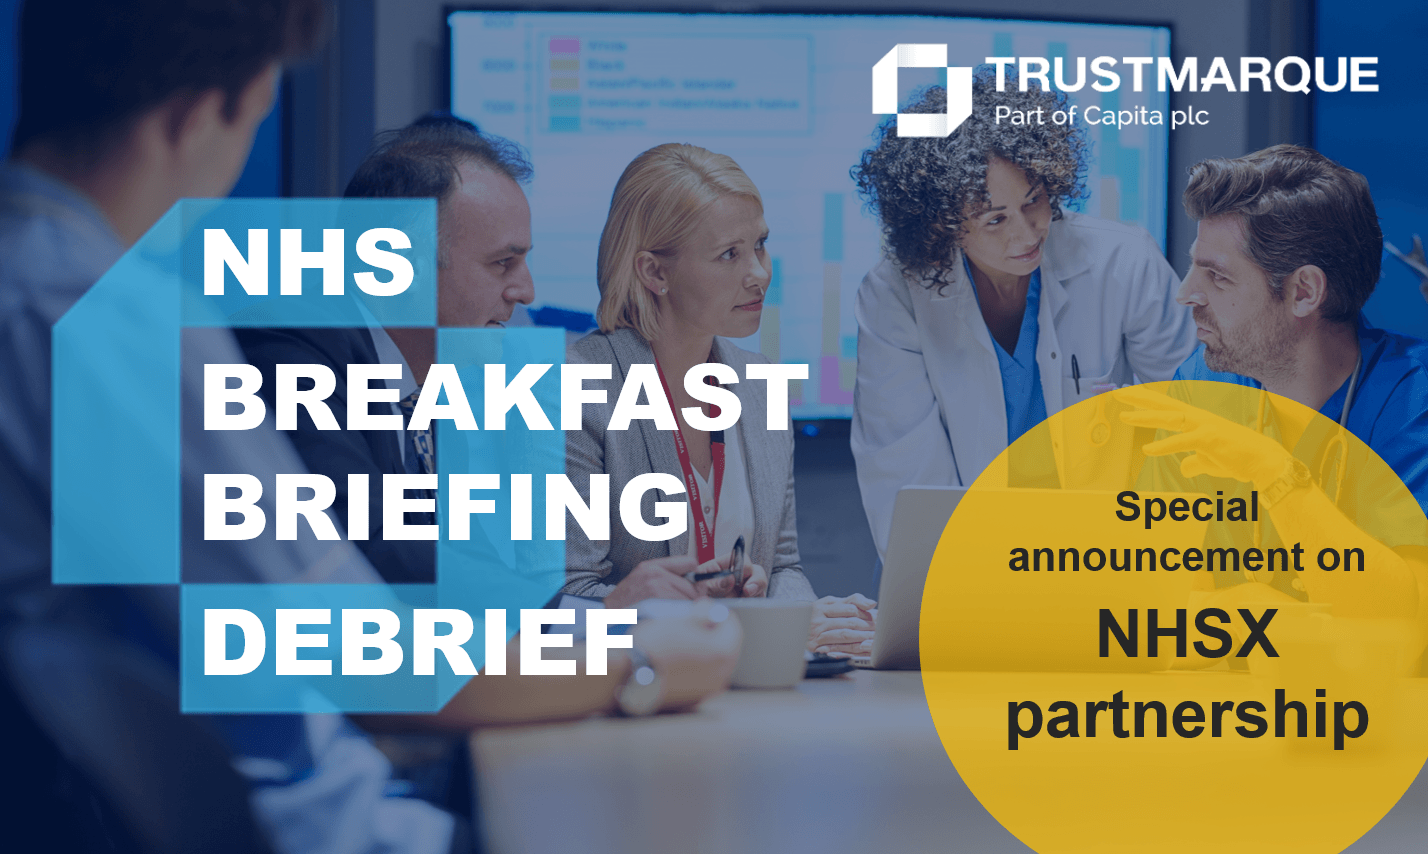 NHS roundtable debrief